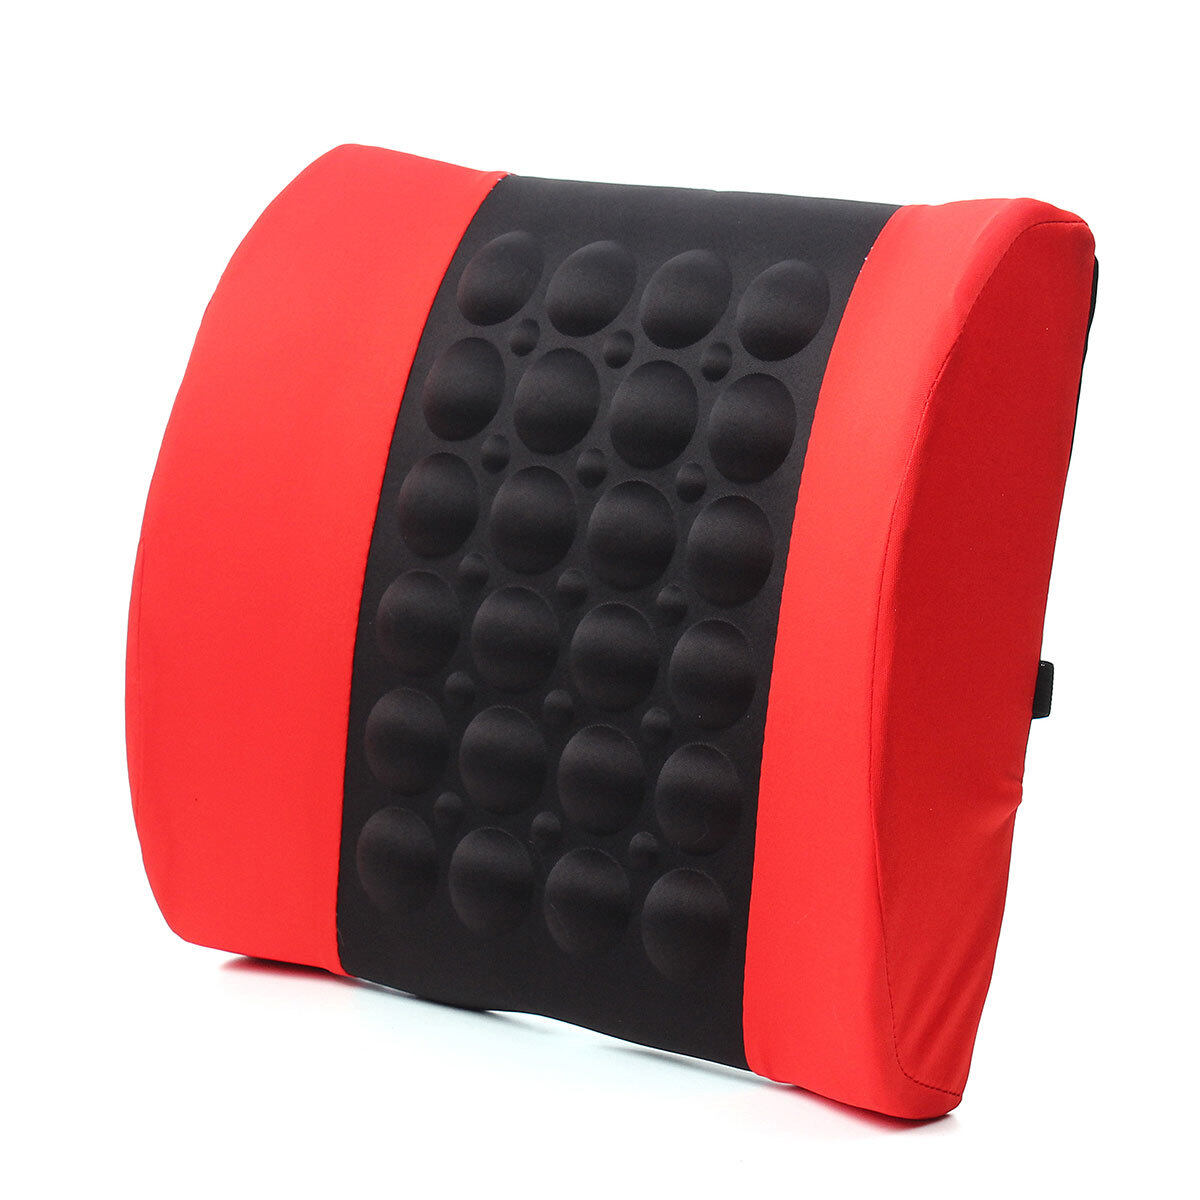 Car back lumbar posture support electrical massage cushion pillow 12v van red lazada malaysia